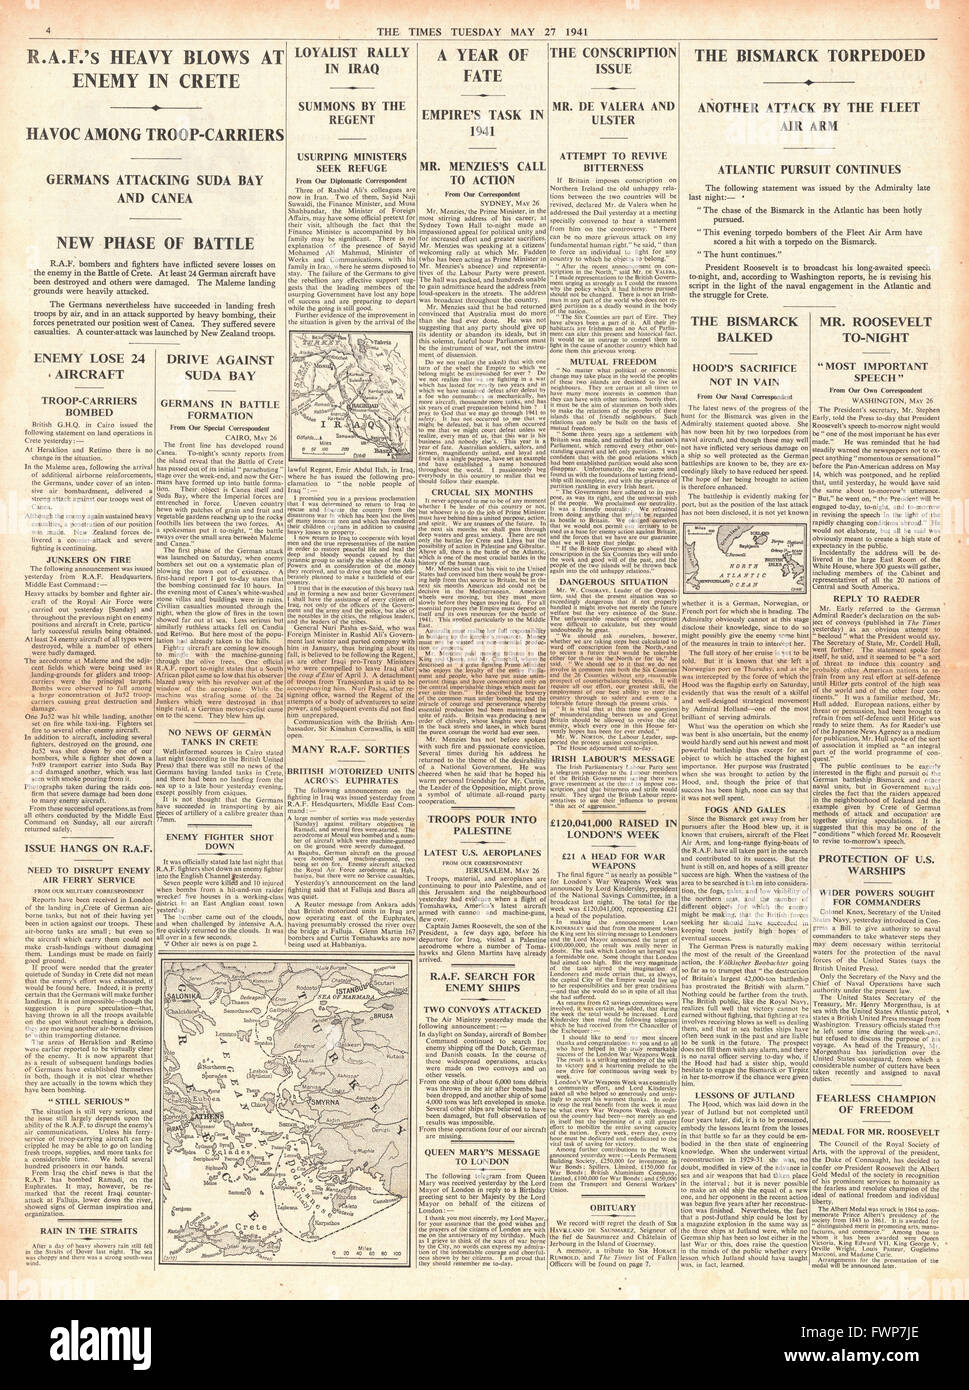 1941 page 4 The Times Battle for Crete and Royal Navy Planes torpedo battleship Bismarck - Stock Image